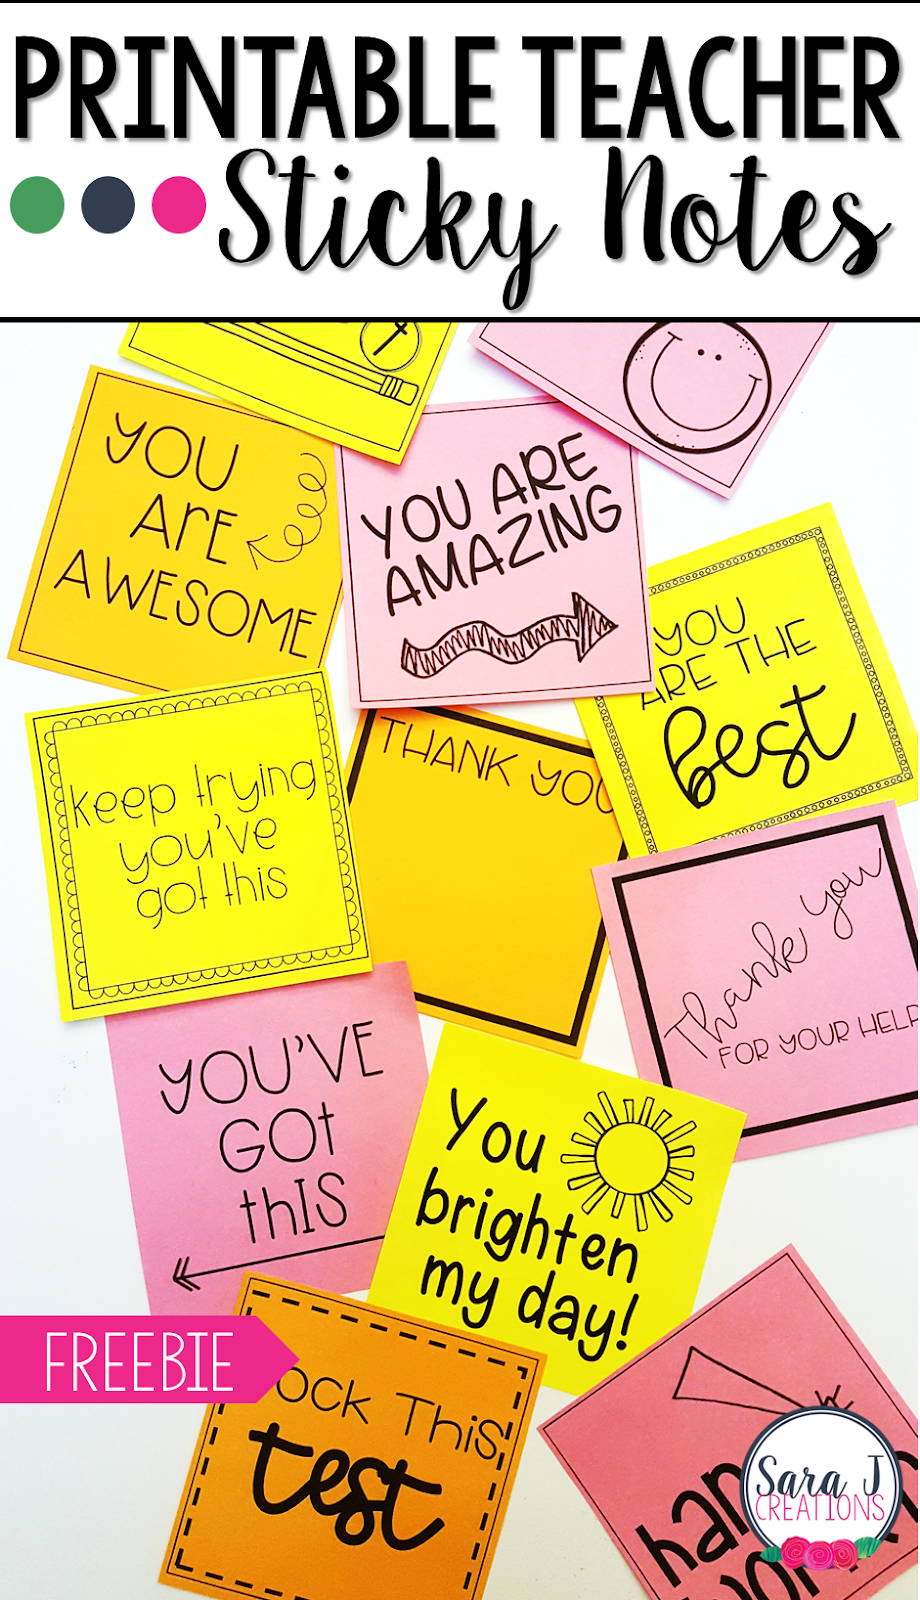 Printable sticky notes for teachers